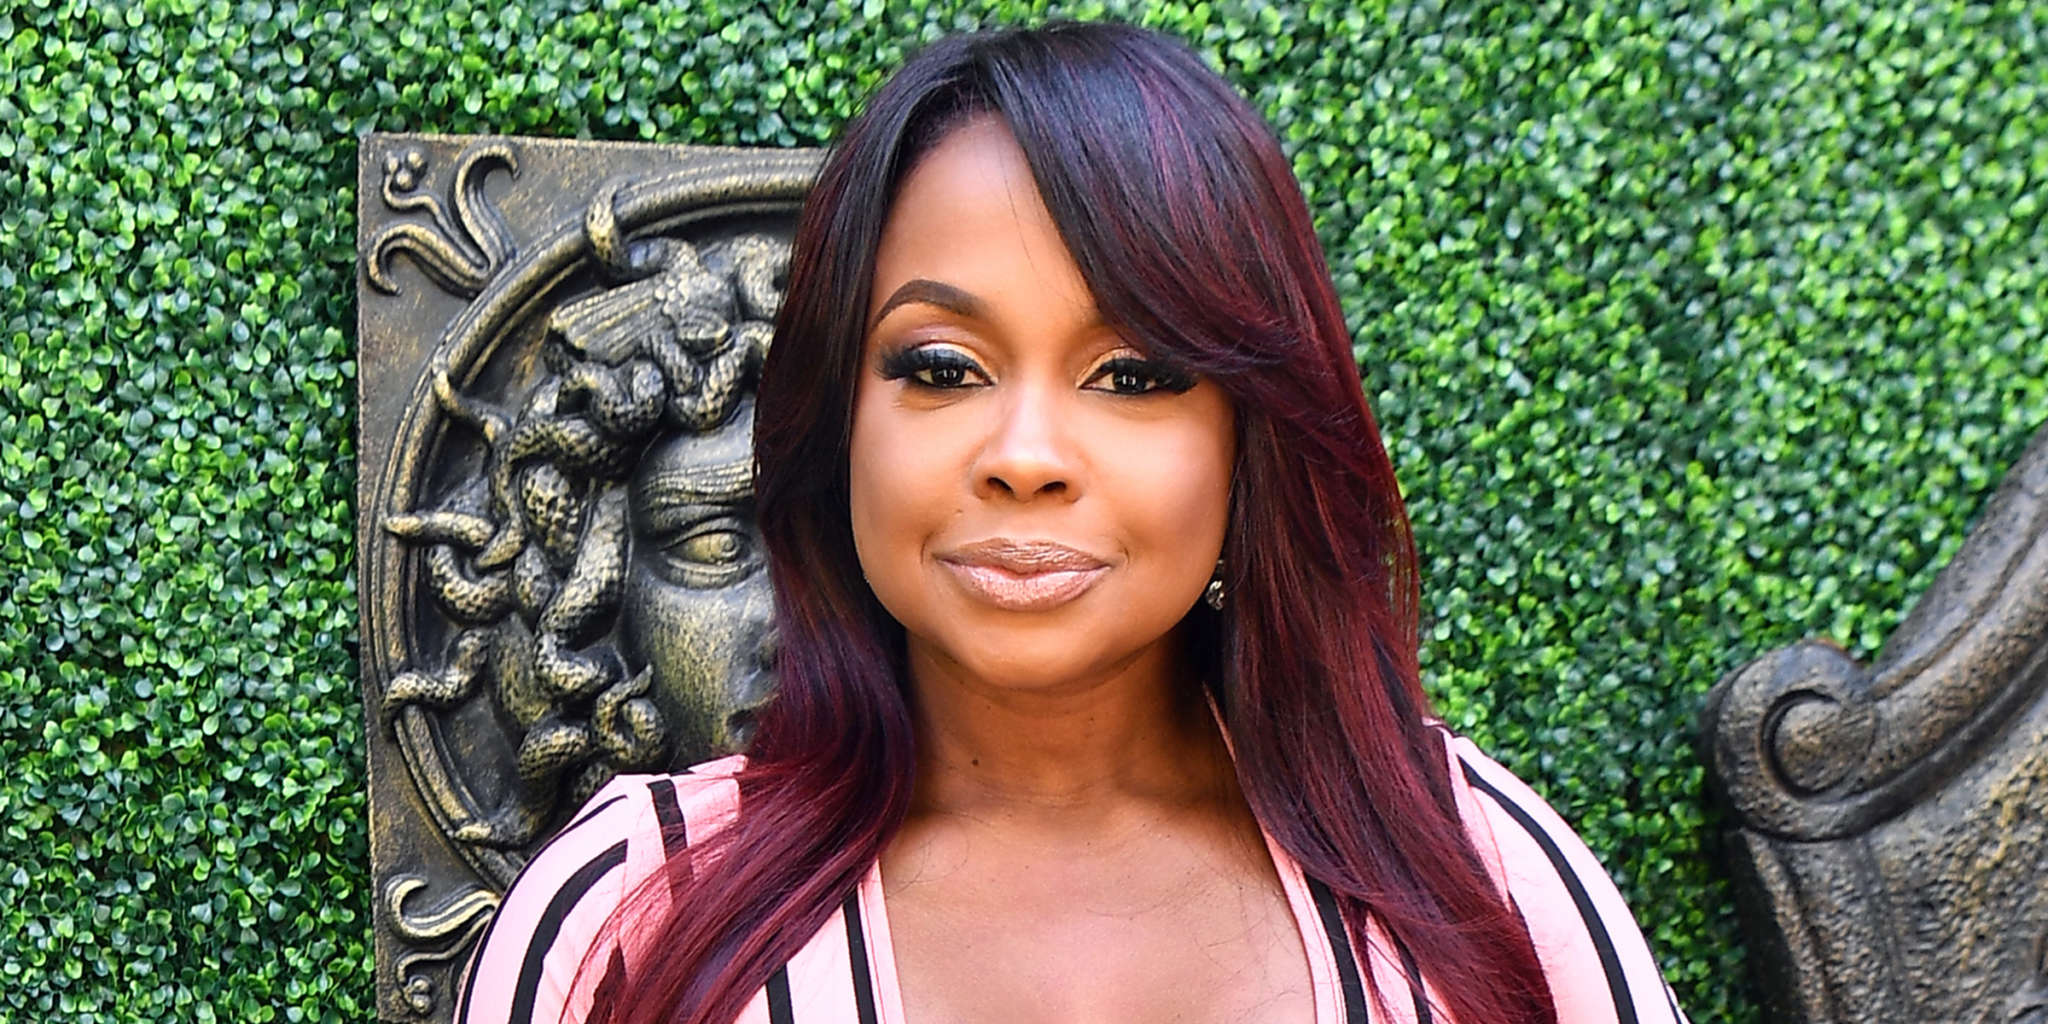 phaedra-parks-shows-off-her-best-assets-in-a-black-outfit-see-her-curves